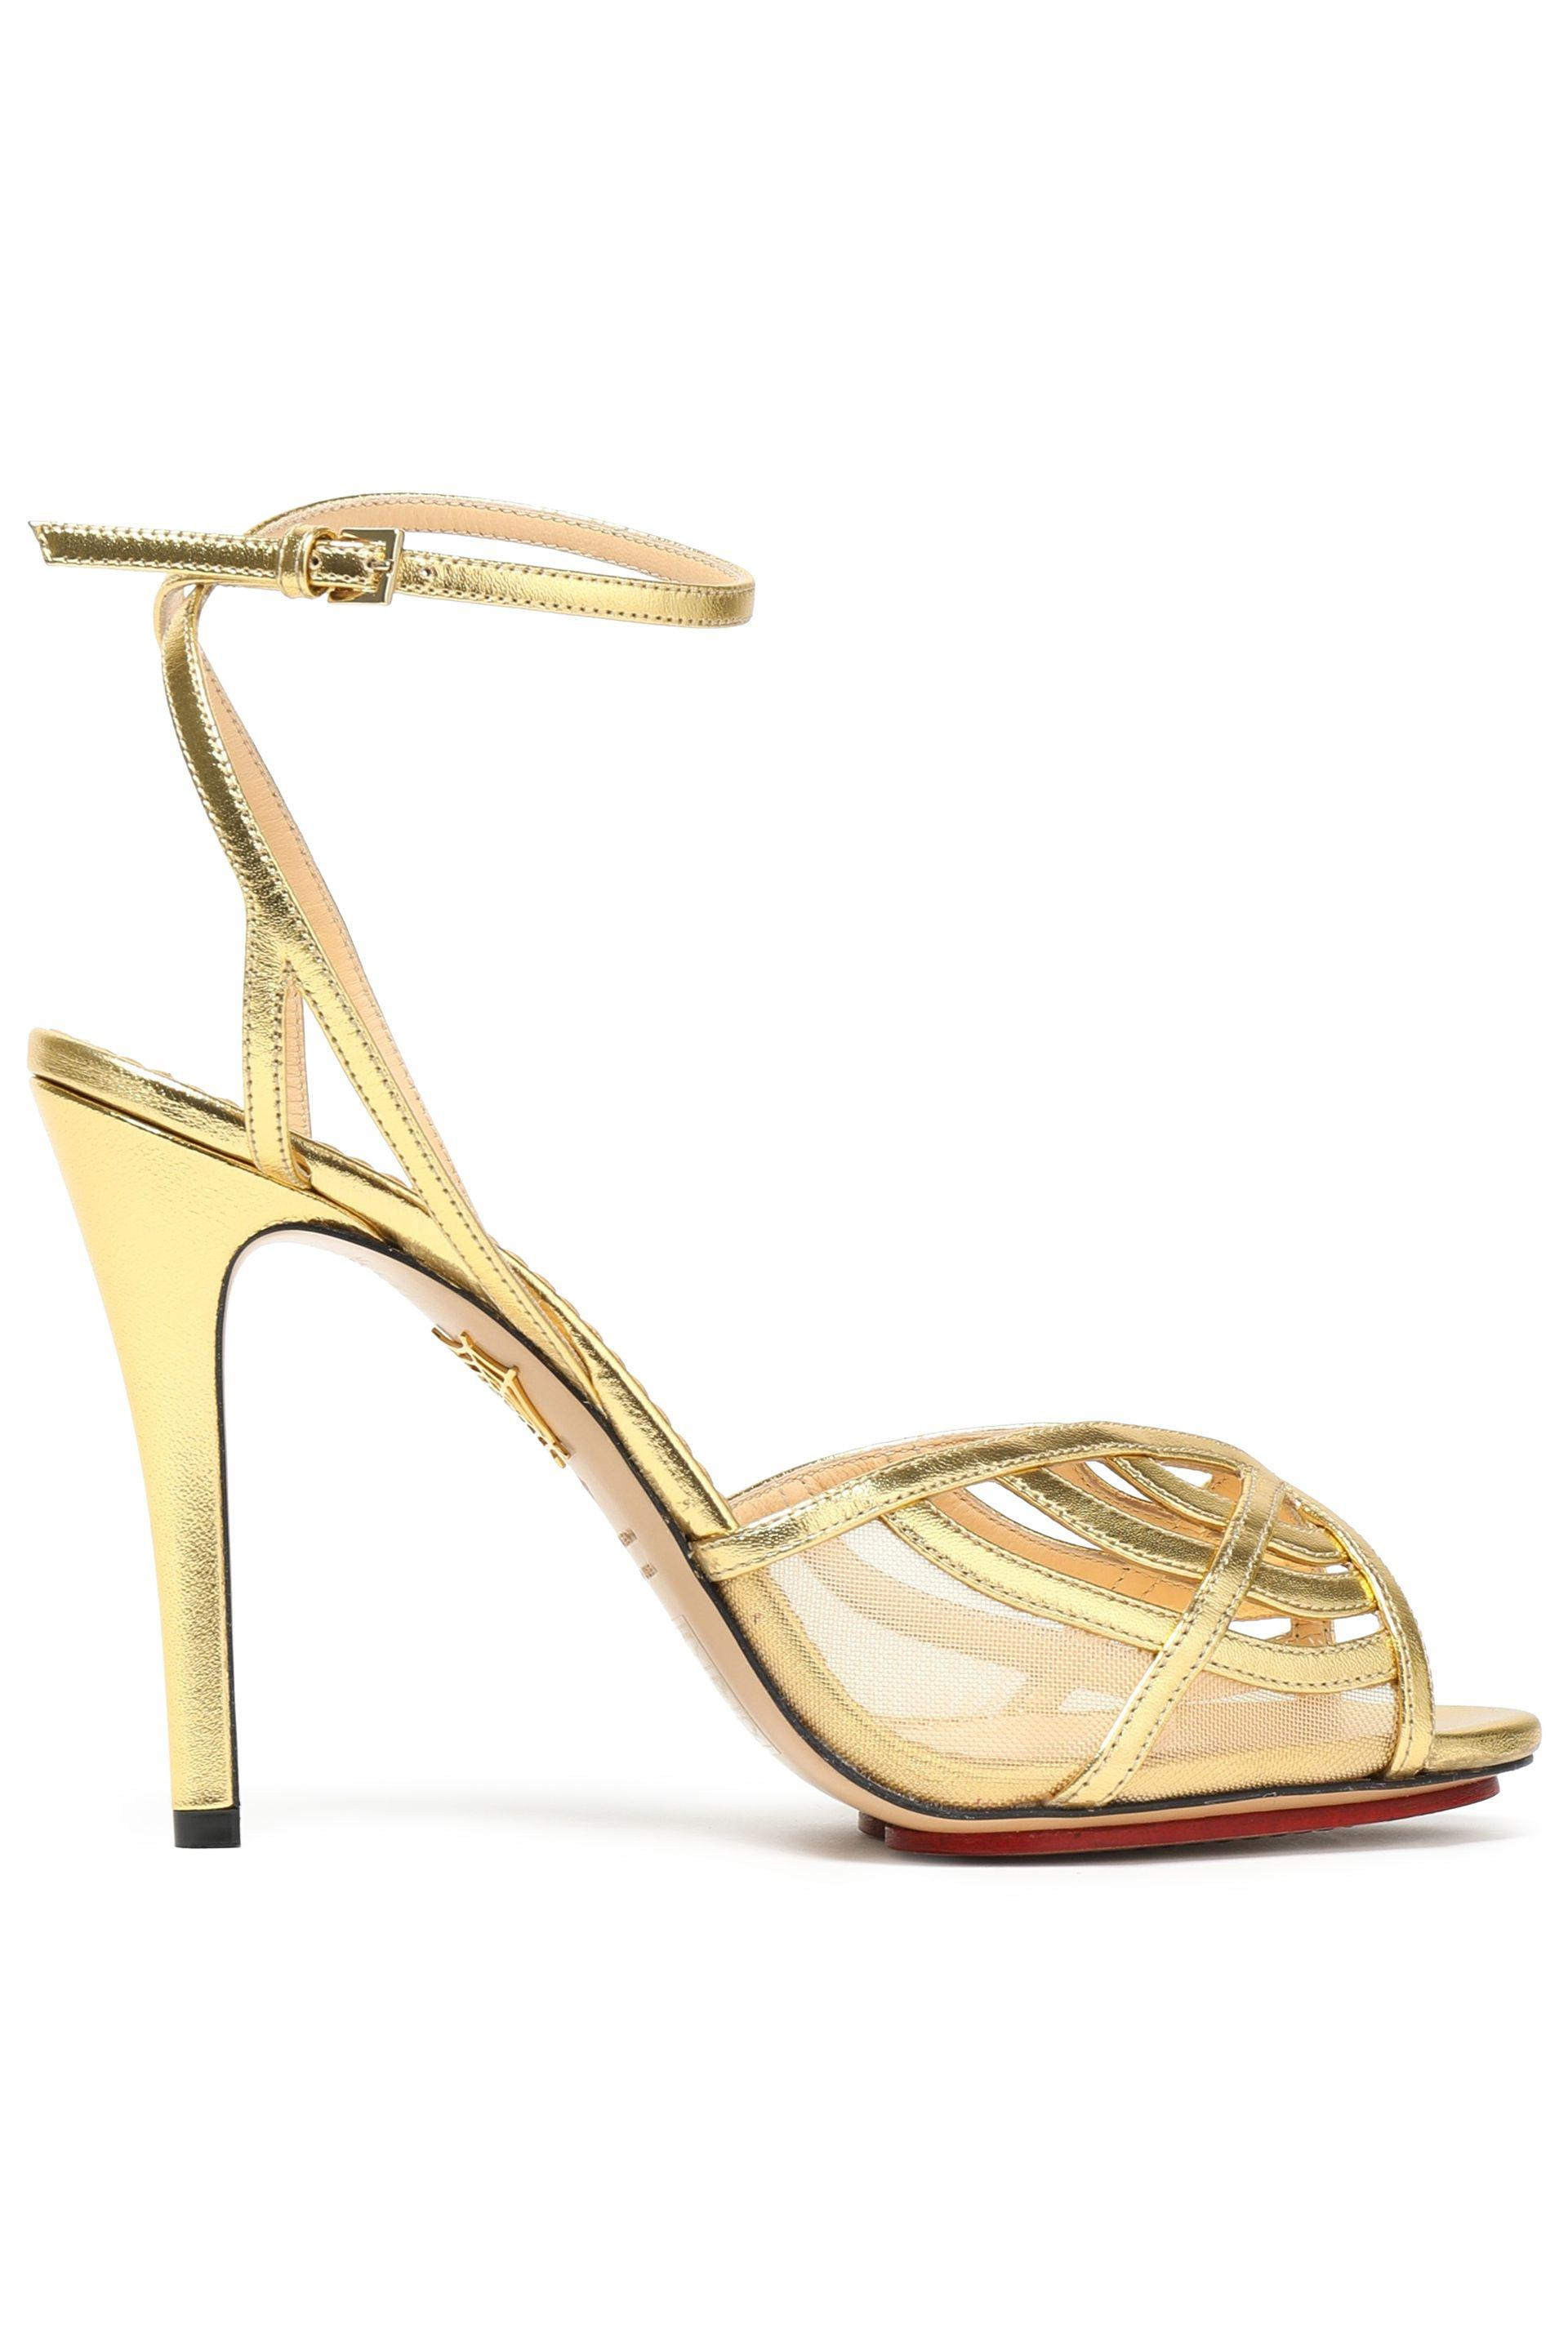 32c7cd85daf Charlotte Olympia Metallic Leather And Mesh Sandals in Metallic - Lyst